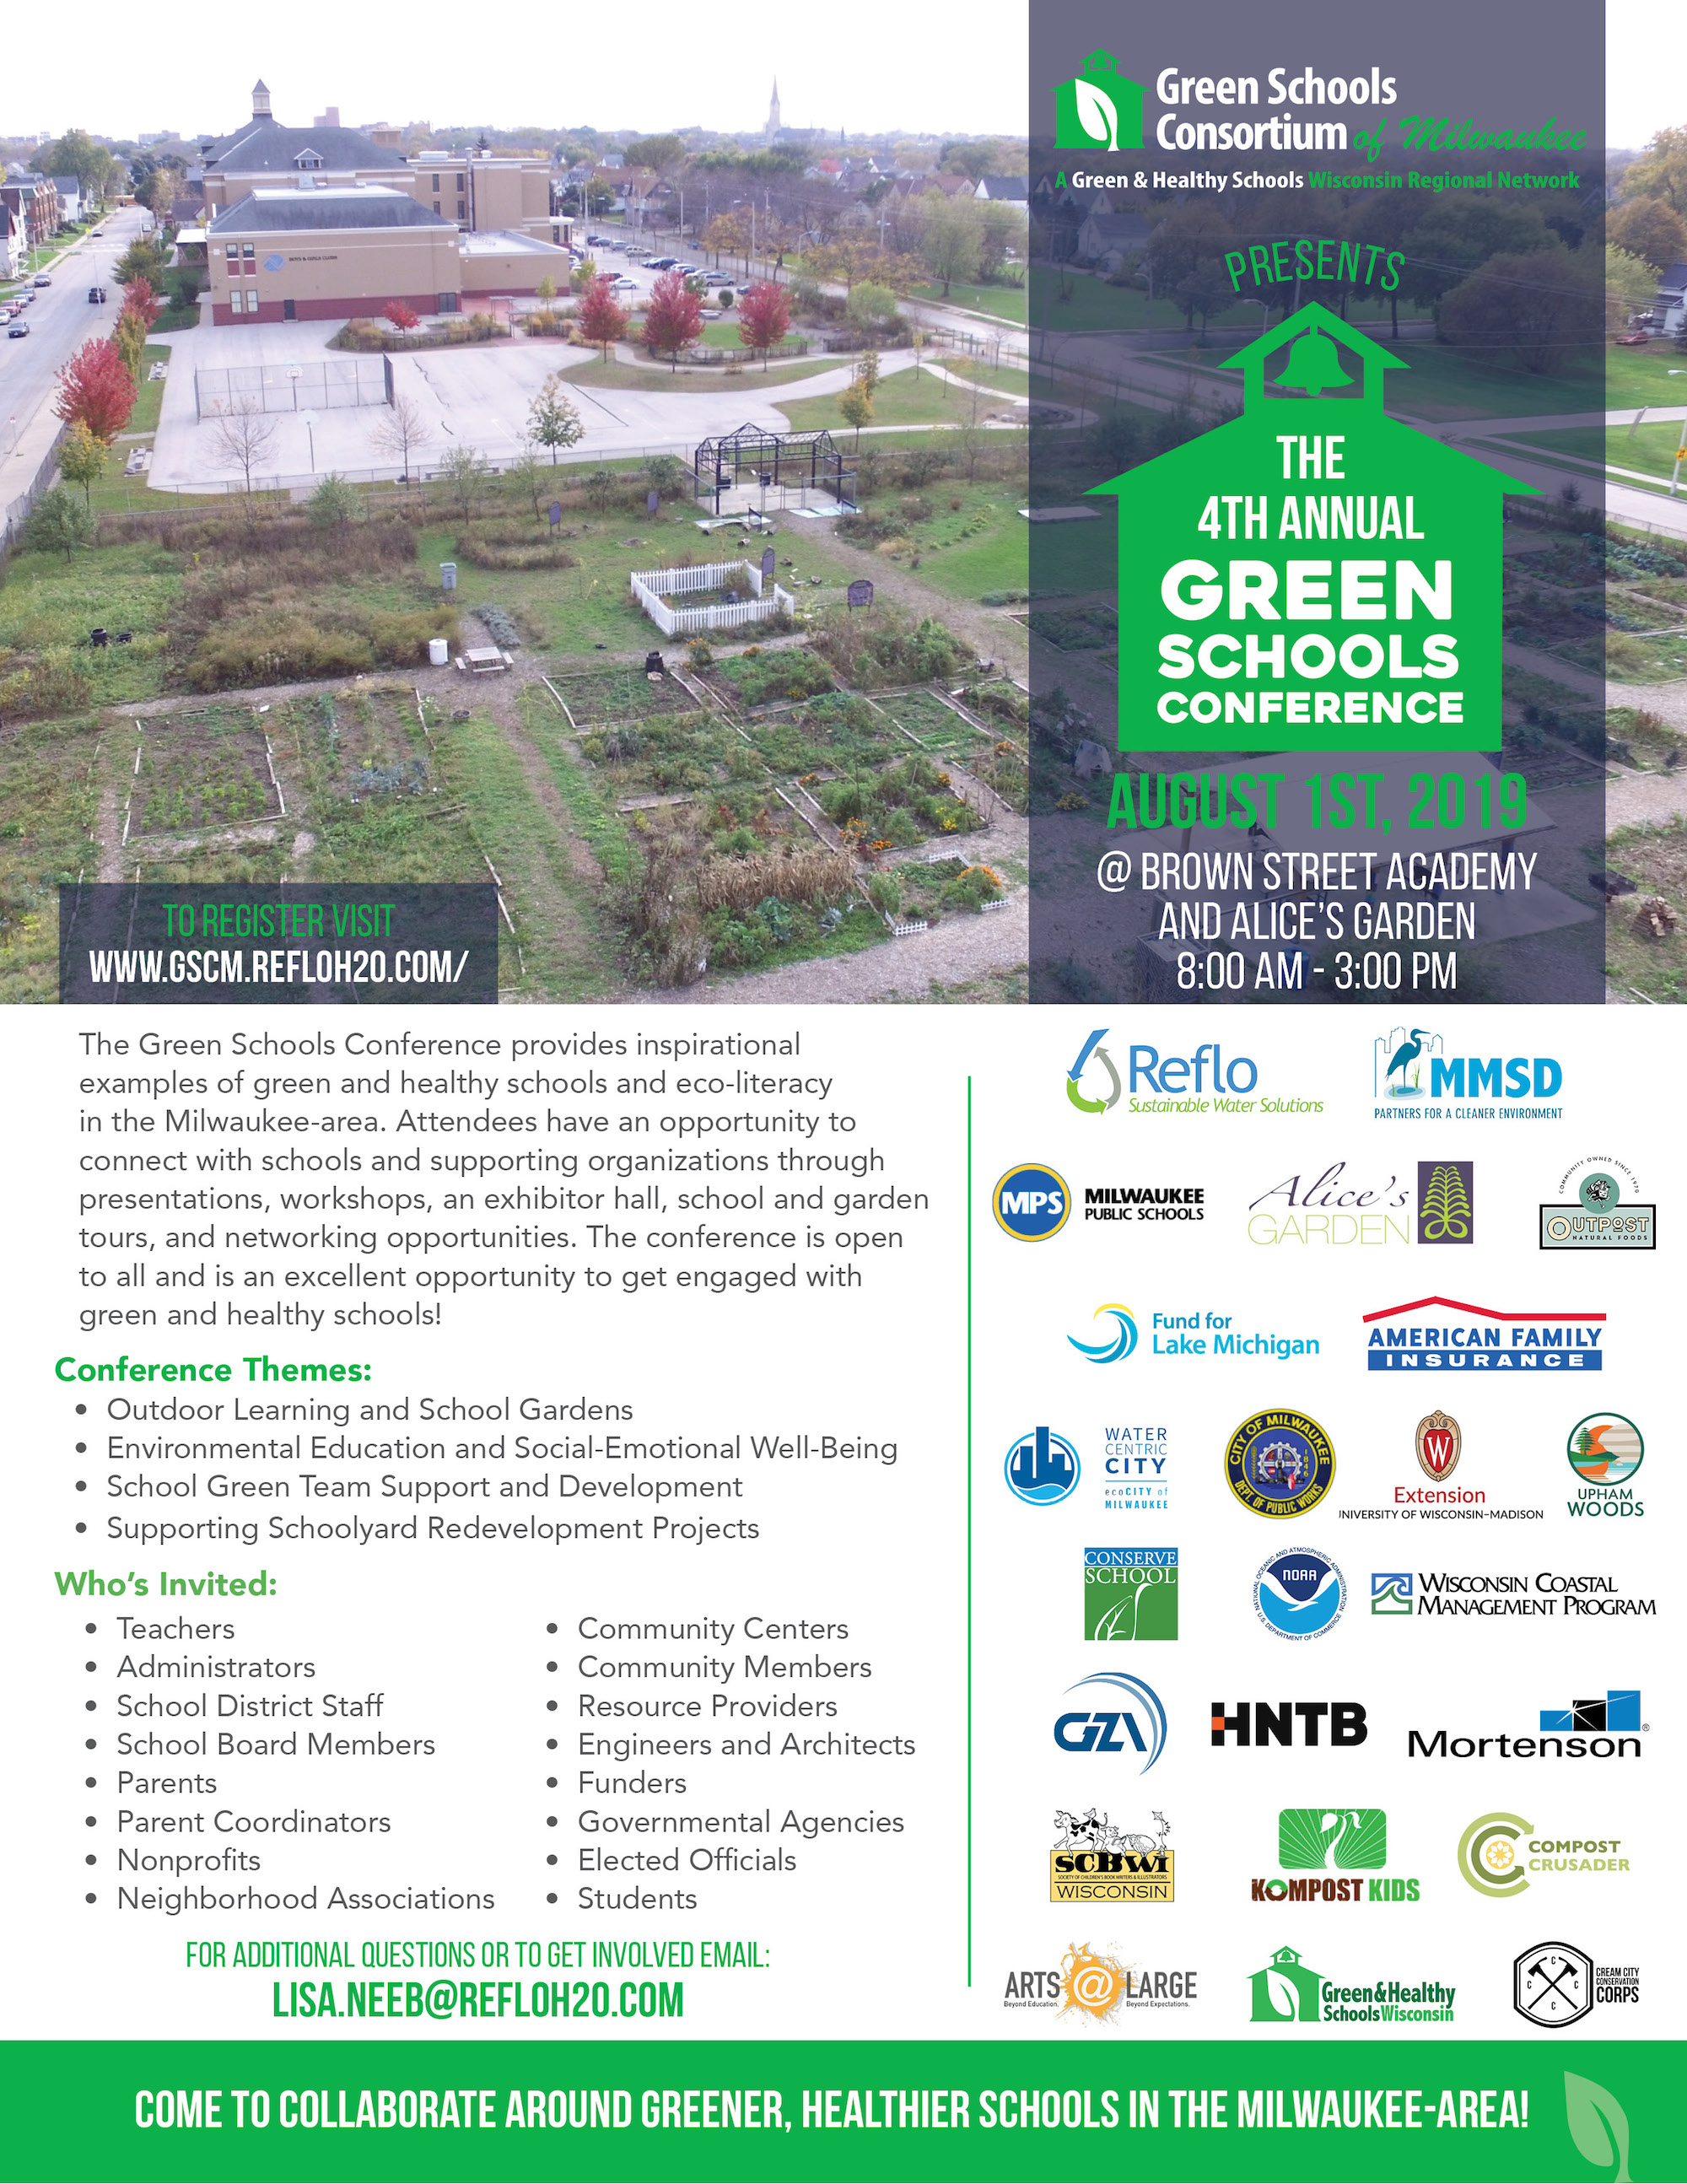 4th Annual Green Schools Conference Flyer - August 1st 2019.jpg